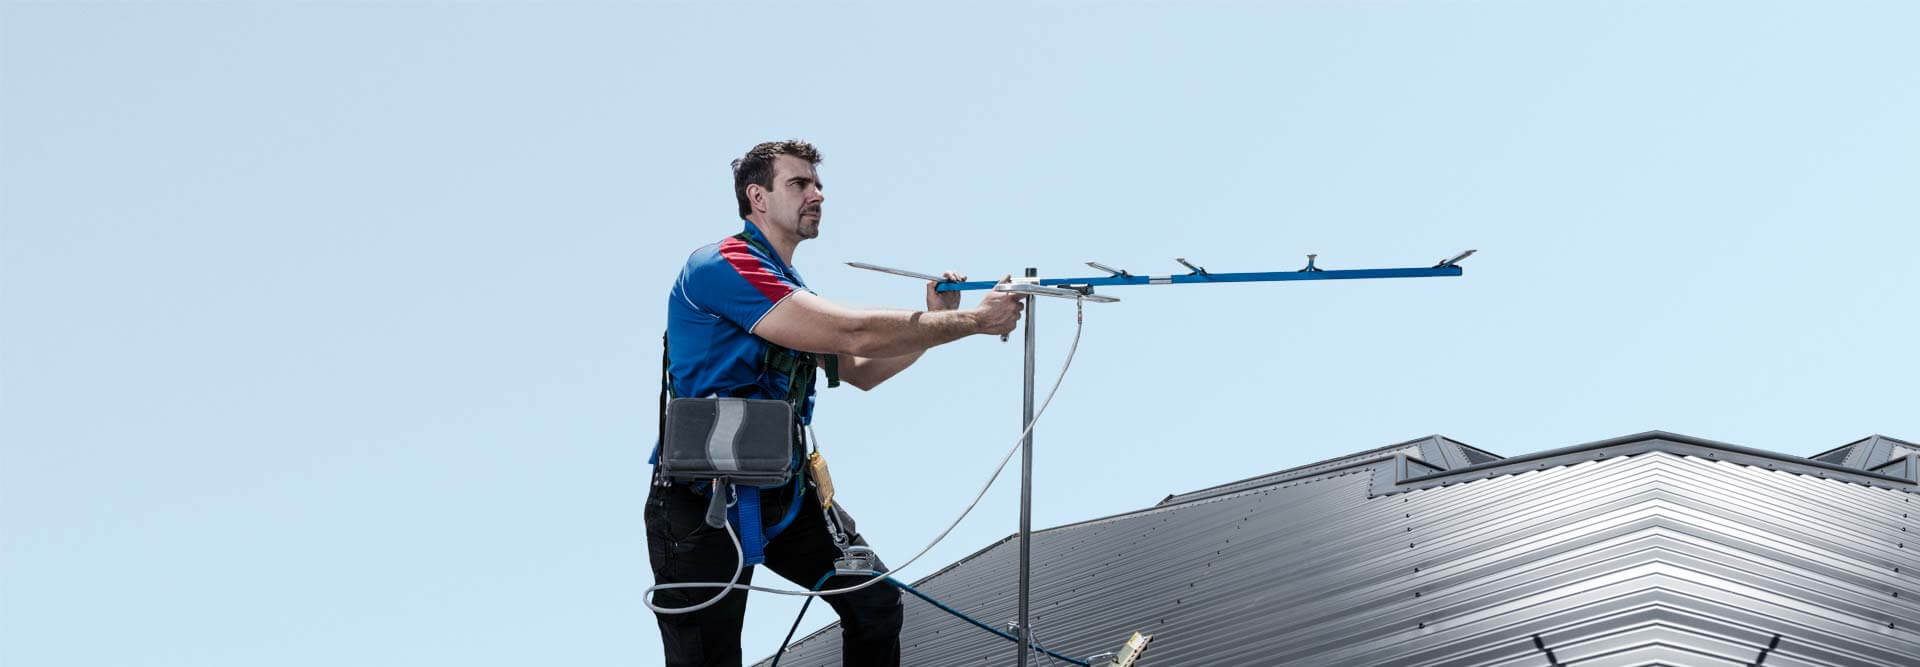 https://localbusinessau.org/wp-content/uploads/2019/04/Antenna-Installation-MrAntenna.jpg